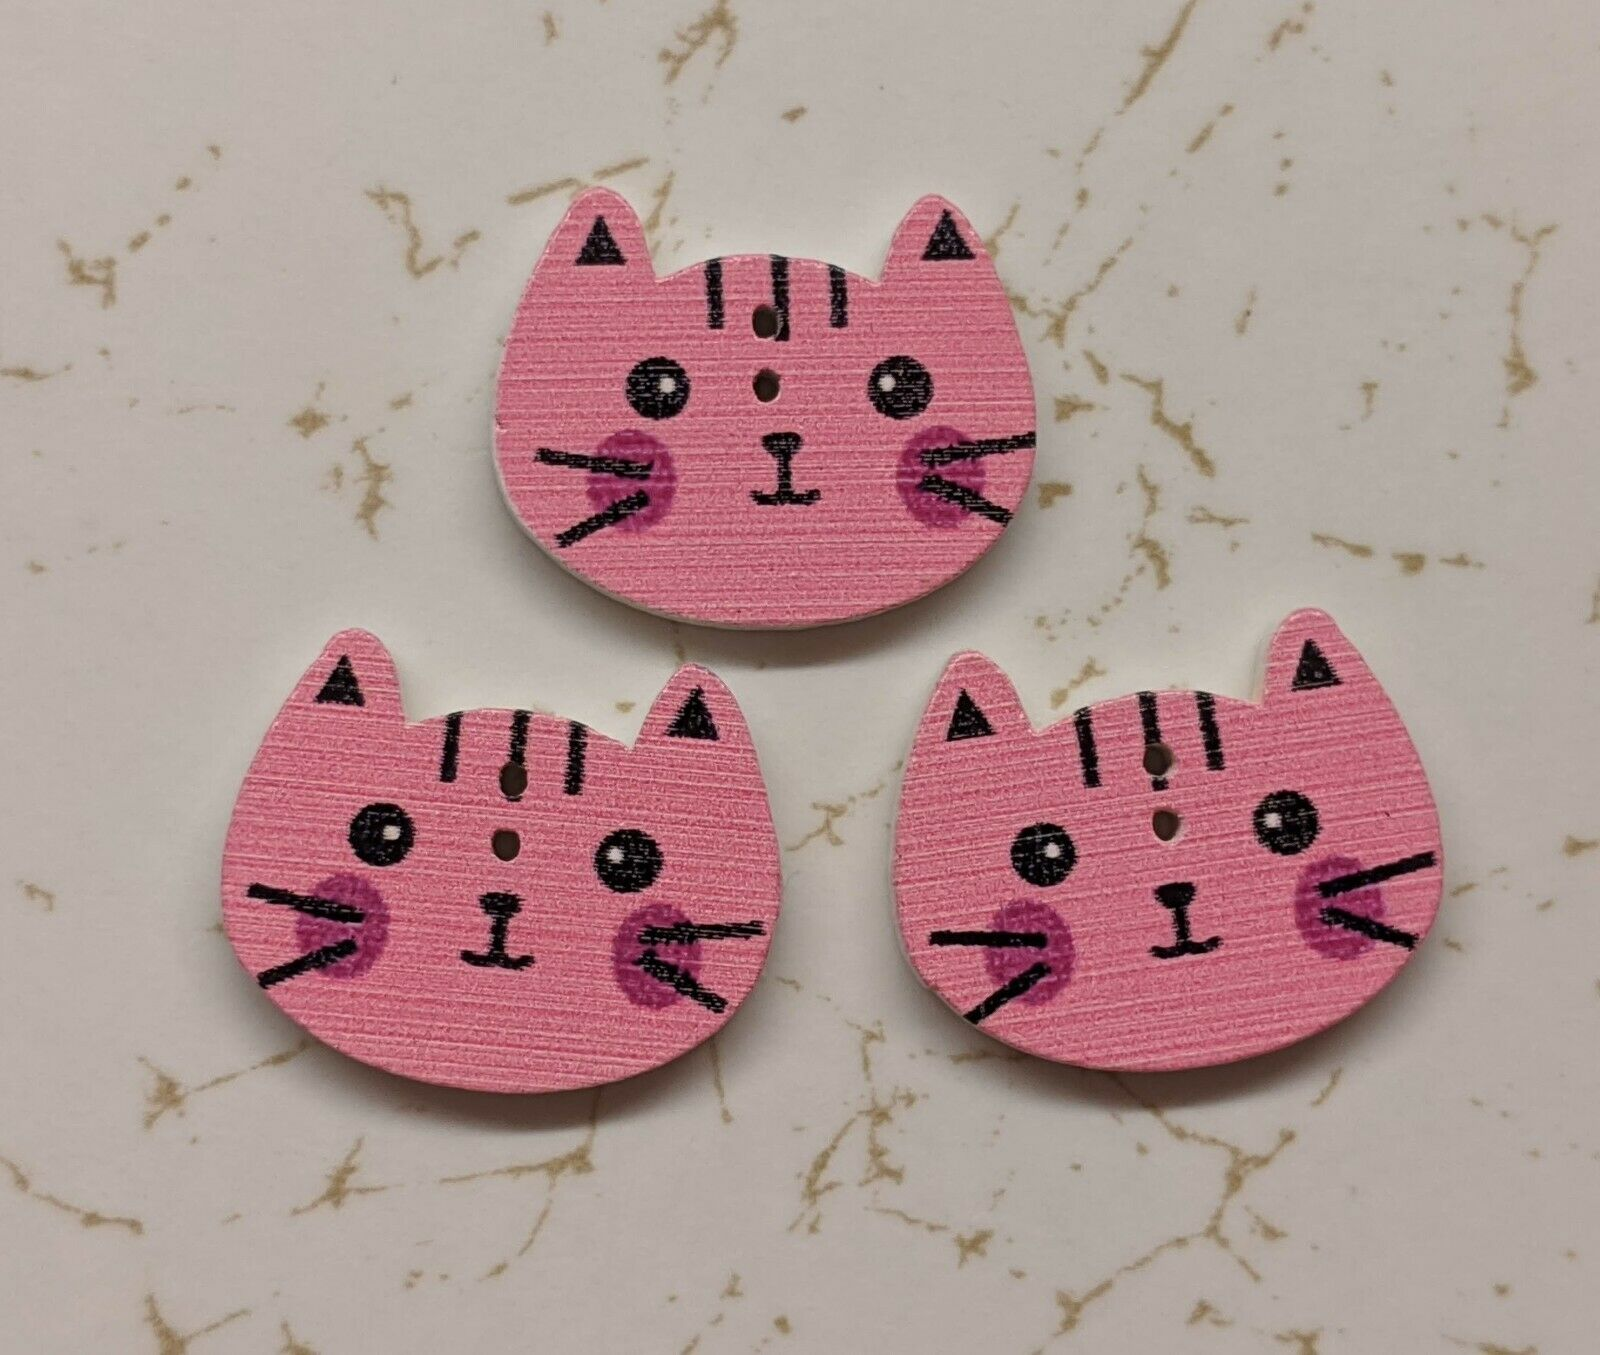 Teal Cat wooden 2 hole button set of 5 L